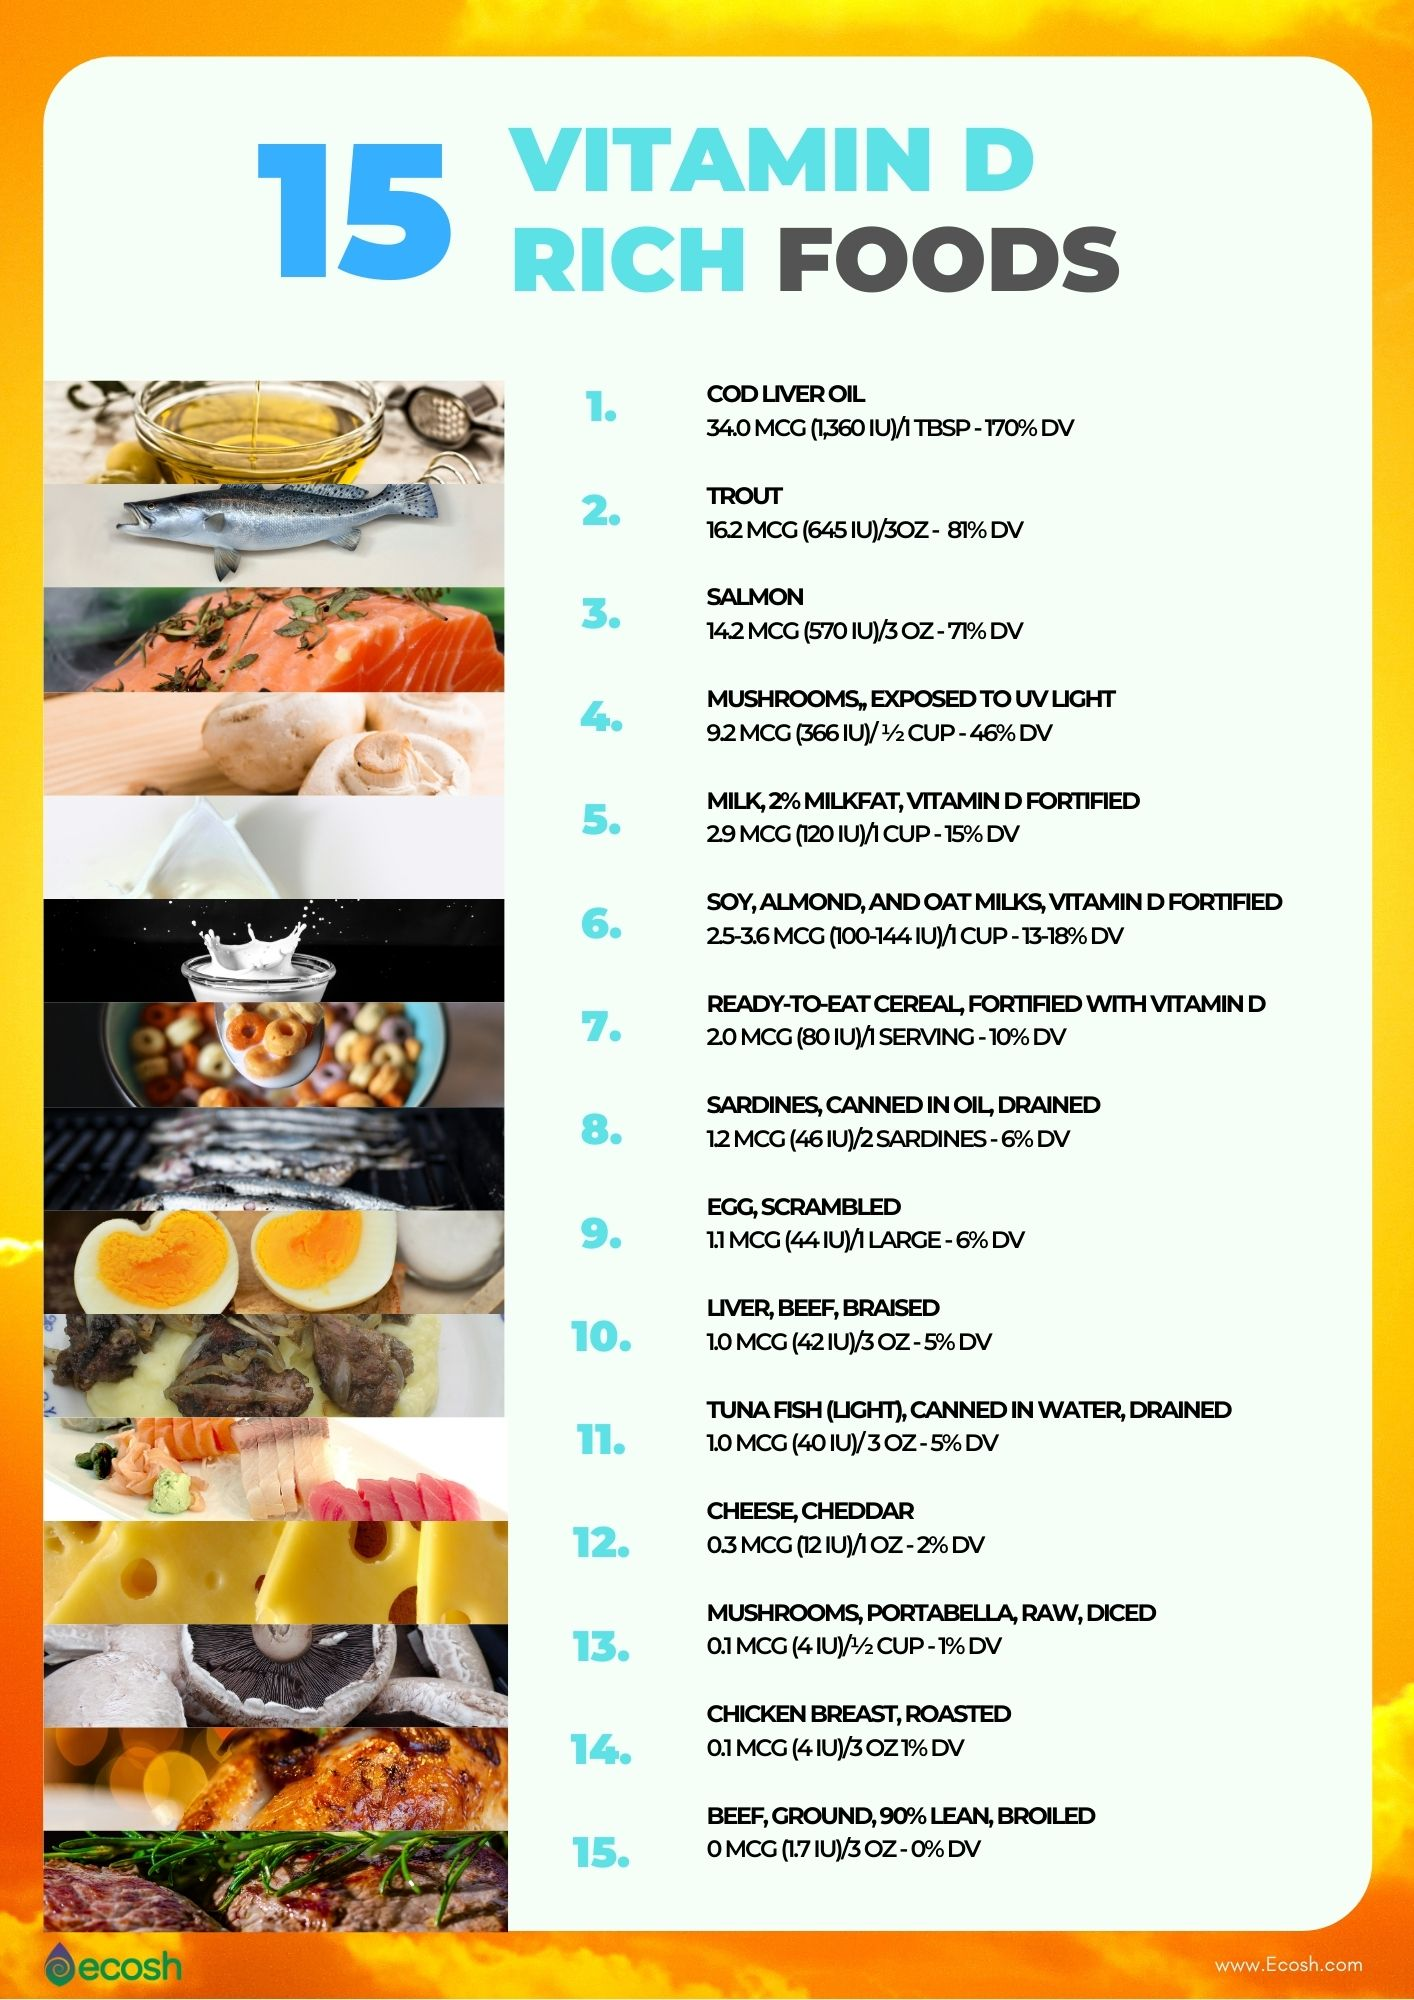 15_Vitamin_D_Rich_Foods_Vitamin_D_Content_In_Common_Foods_Vitamin_D_Sources